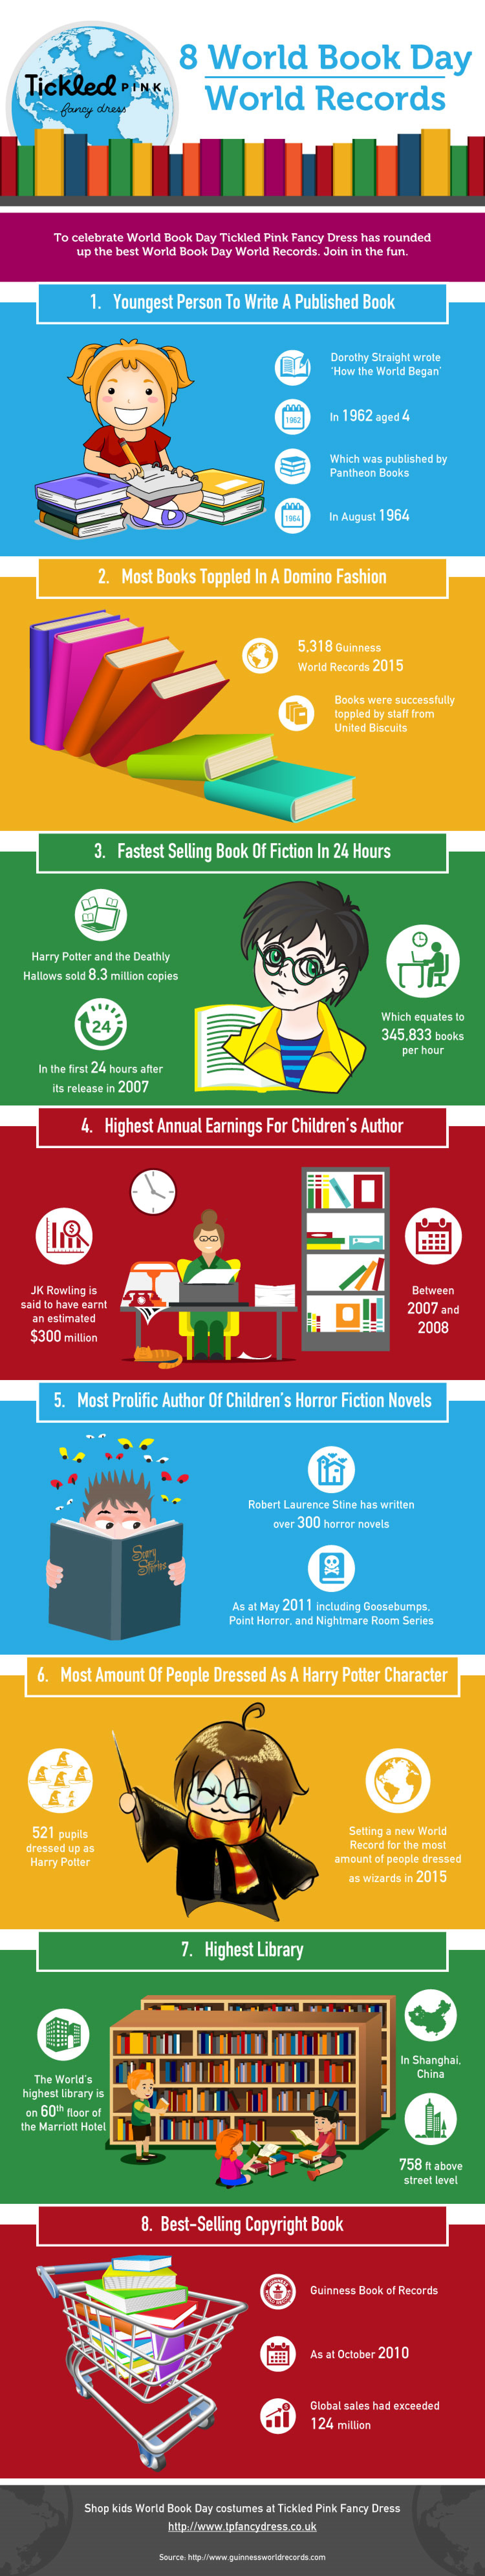 8 World Book Day World Records Infographic